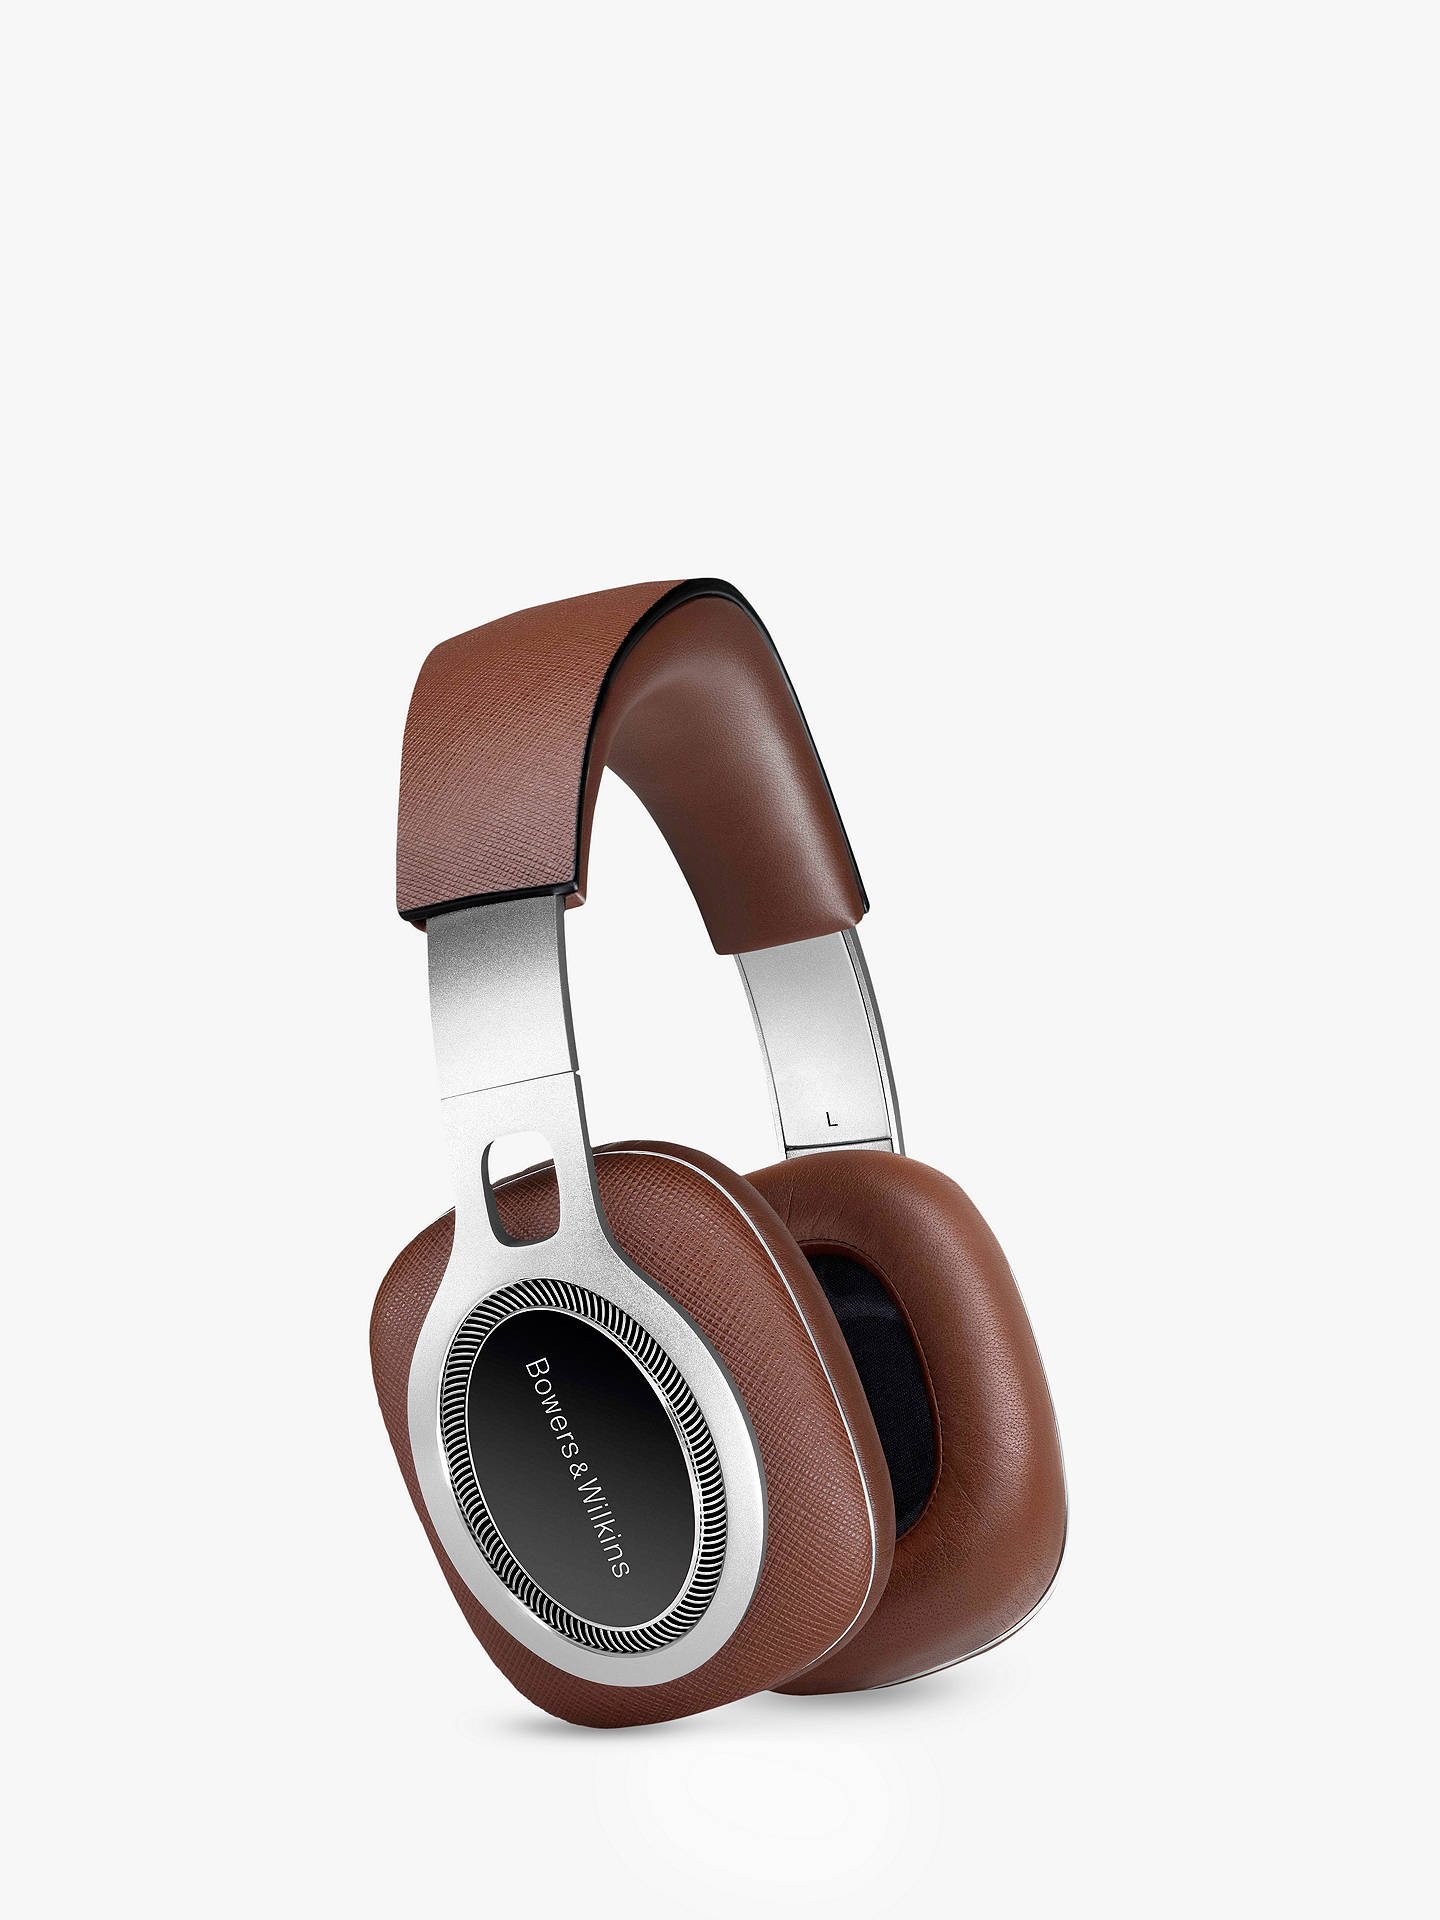 BuyBowers & Wilkins P9 Signature Over-Ear Headphones, Brown Online at johnlewis.com